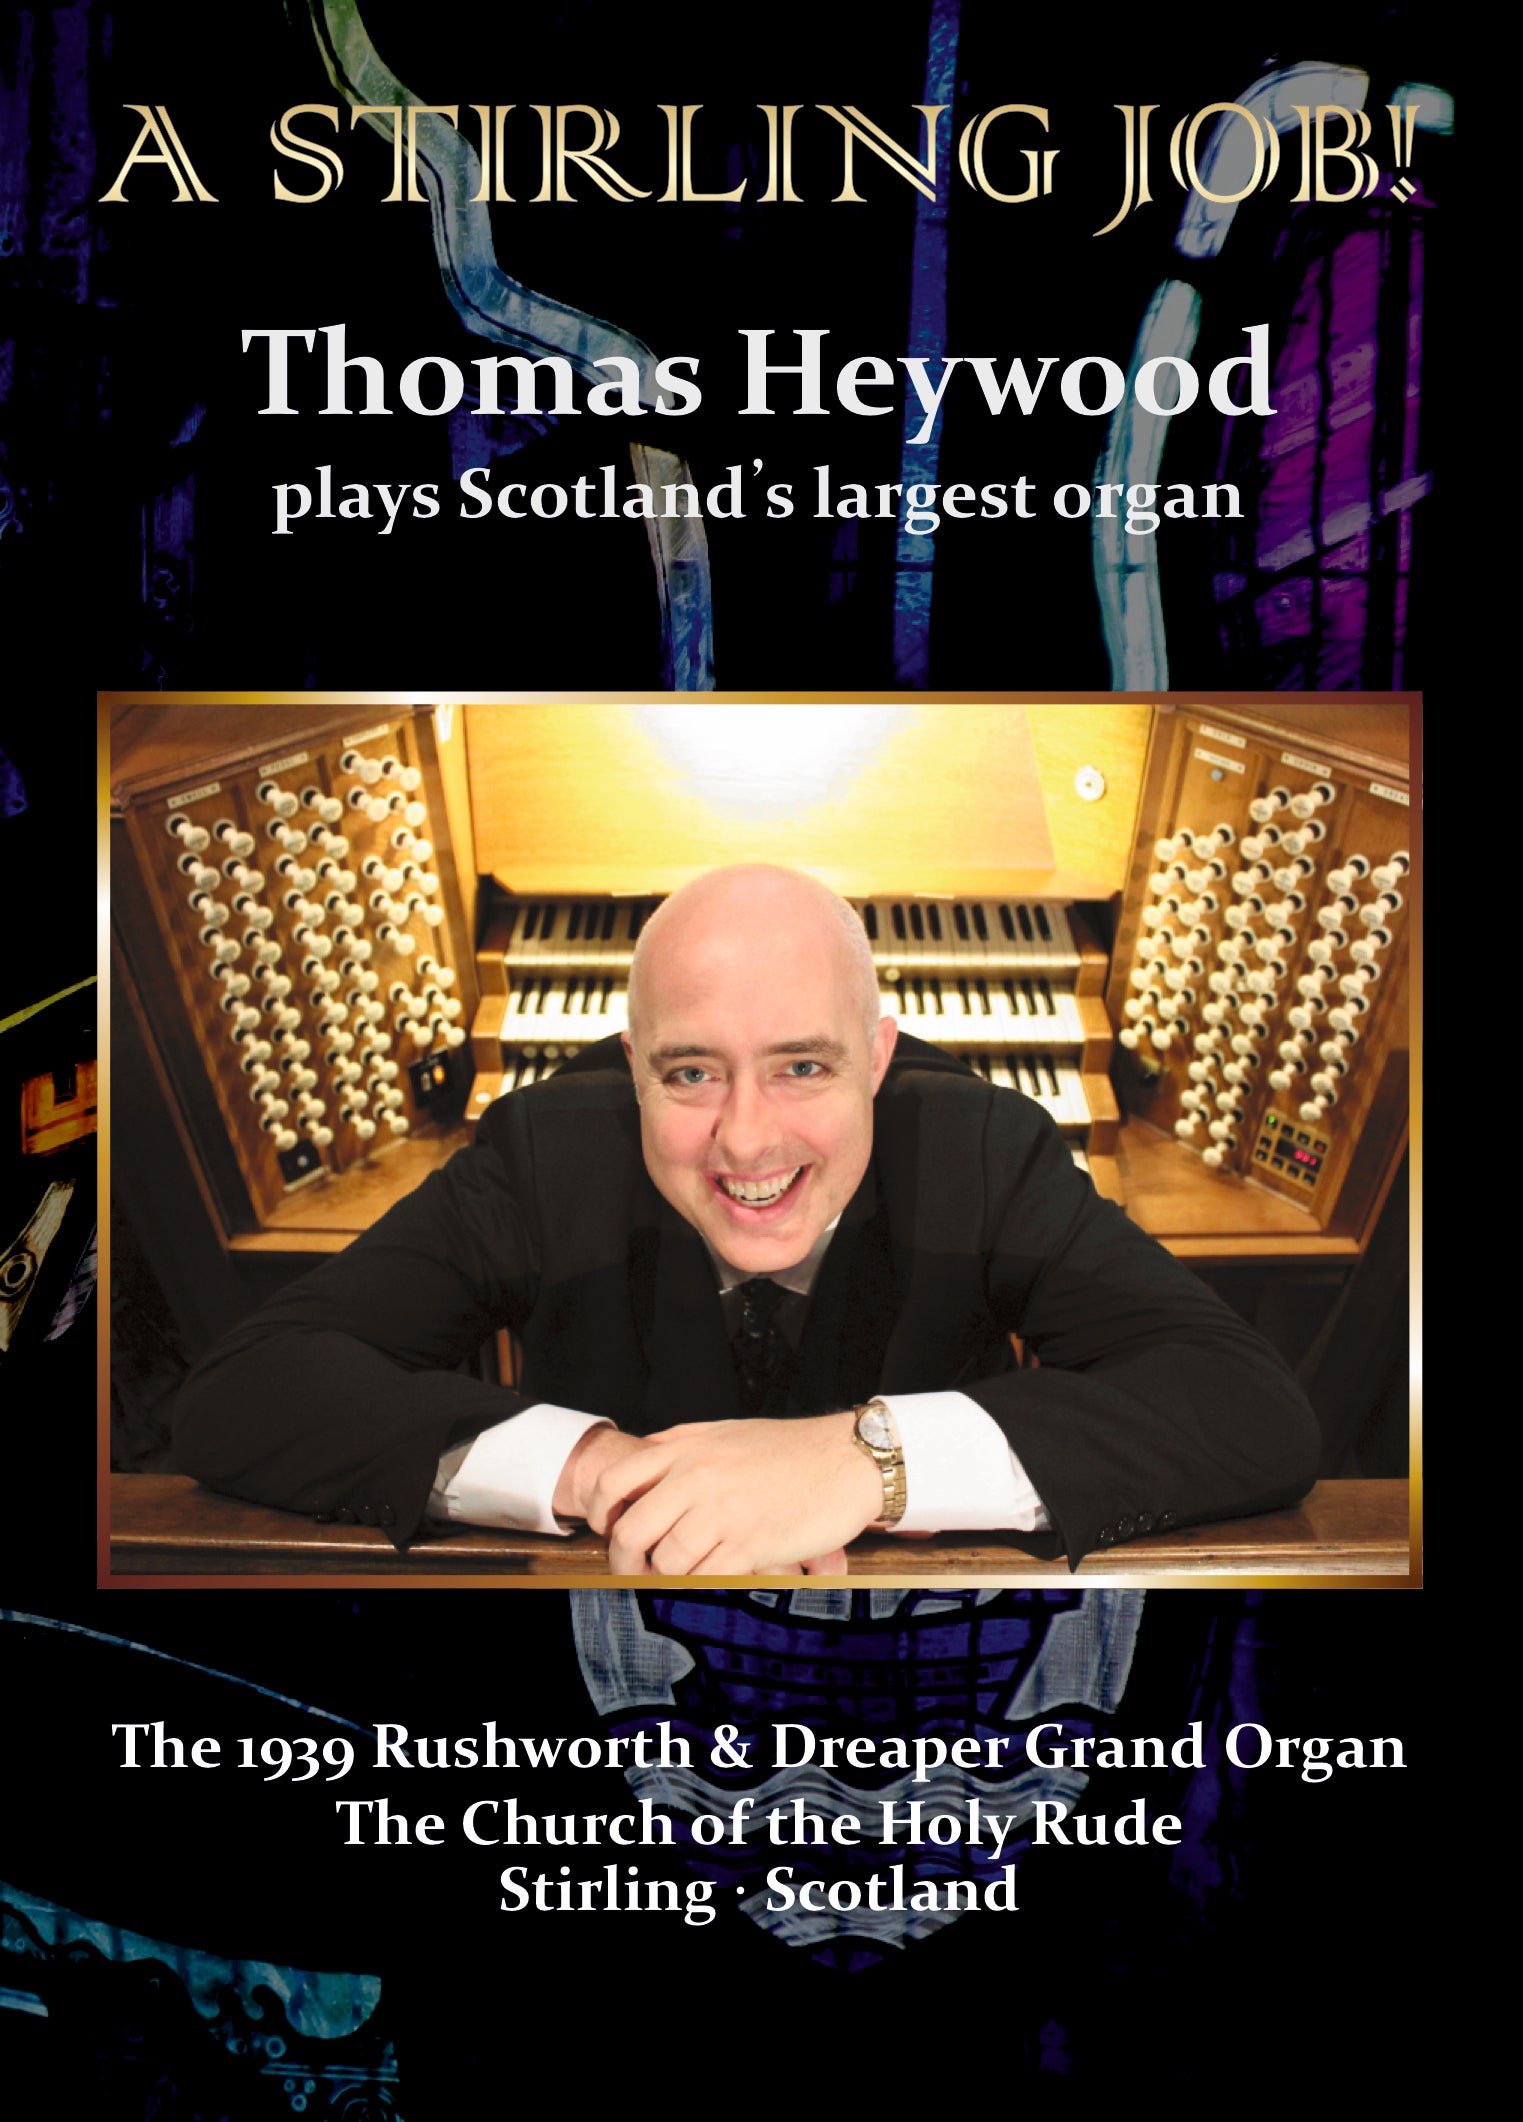 A Stirling Job! (DVD) | Thomas Heywood | Concert Organ International